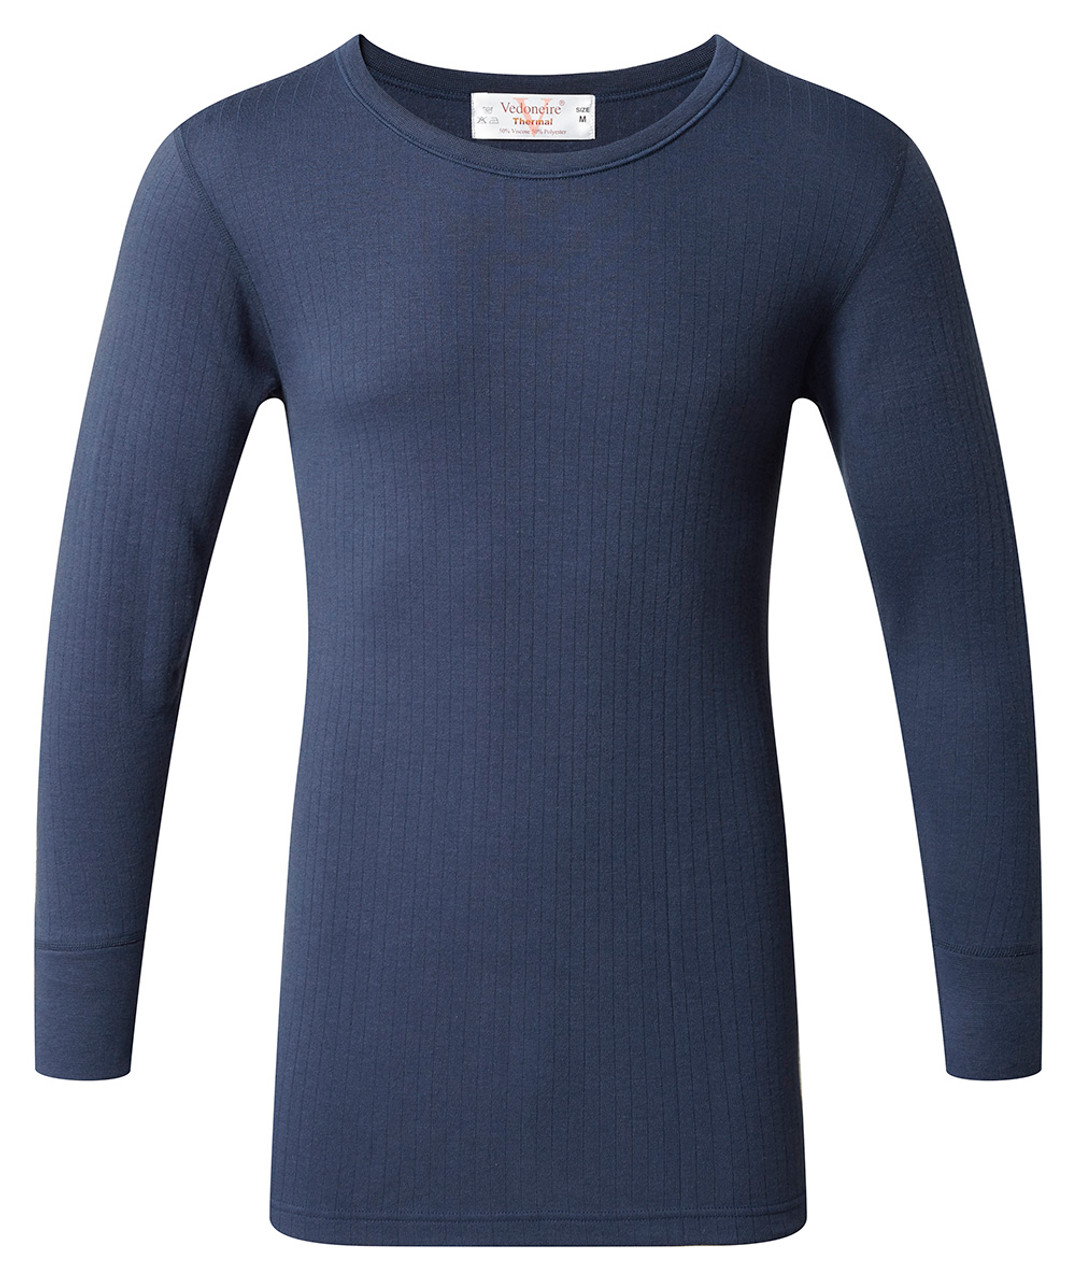 best quality for new lifestyle new style of 2019 Mens Thermal Long Sleeve Winter Top x 1 (1856) Blue by Vedoneire of Ireland